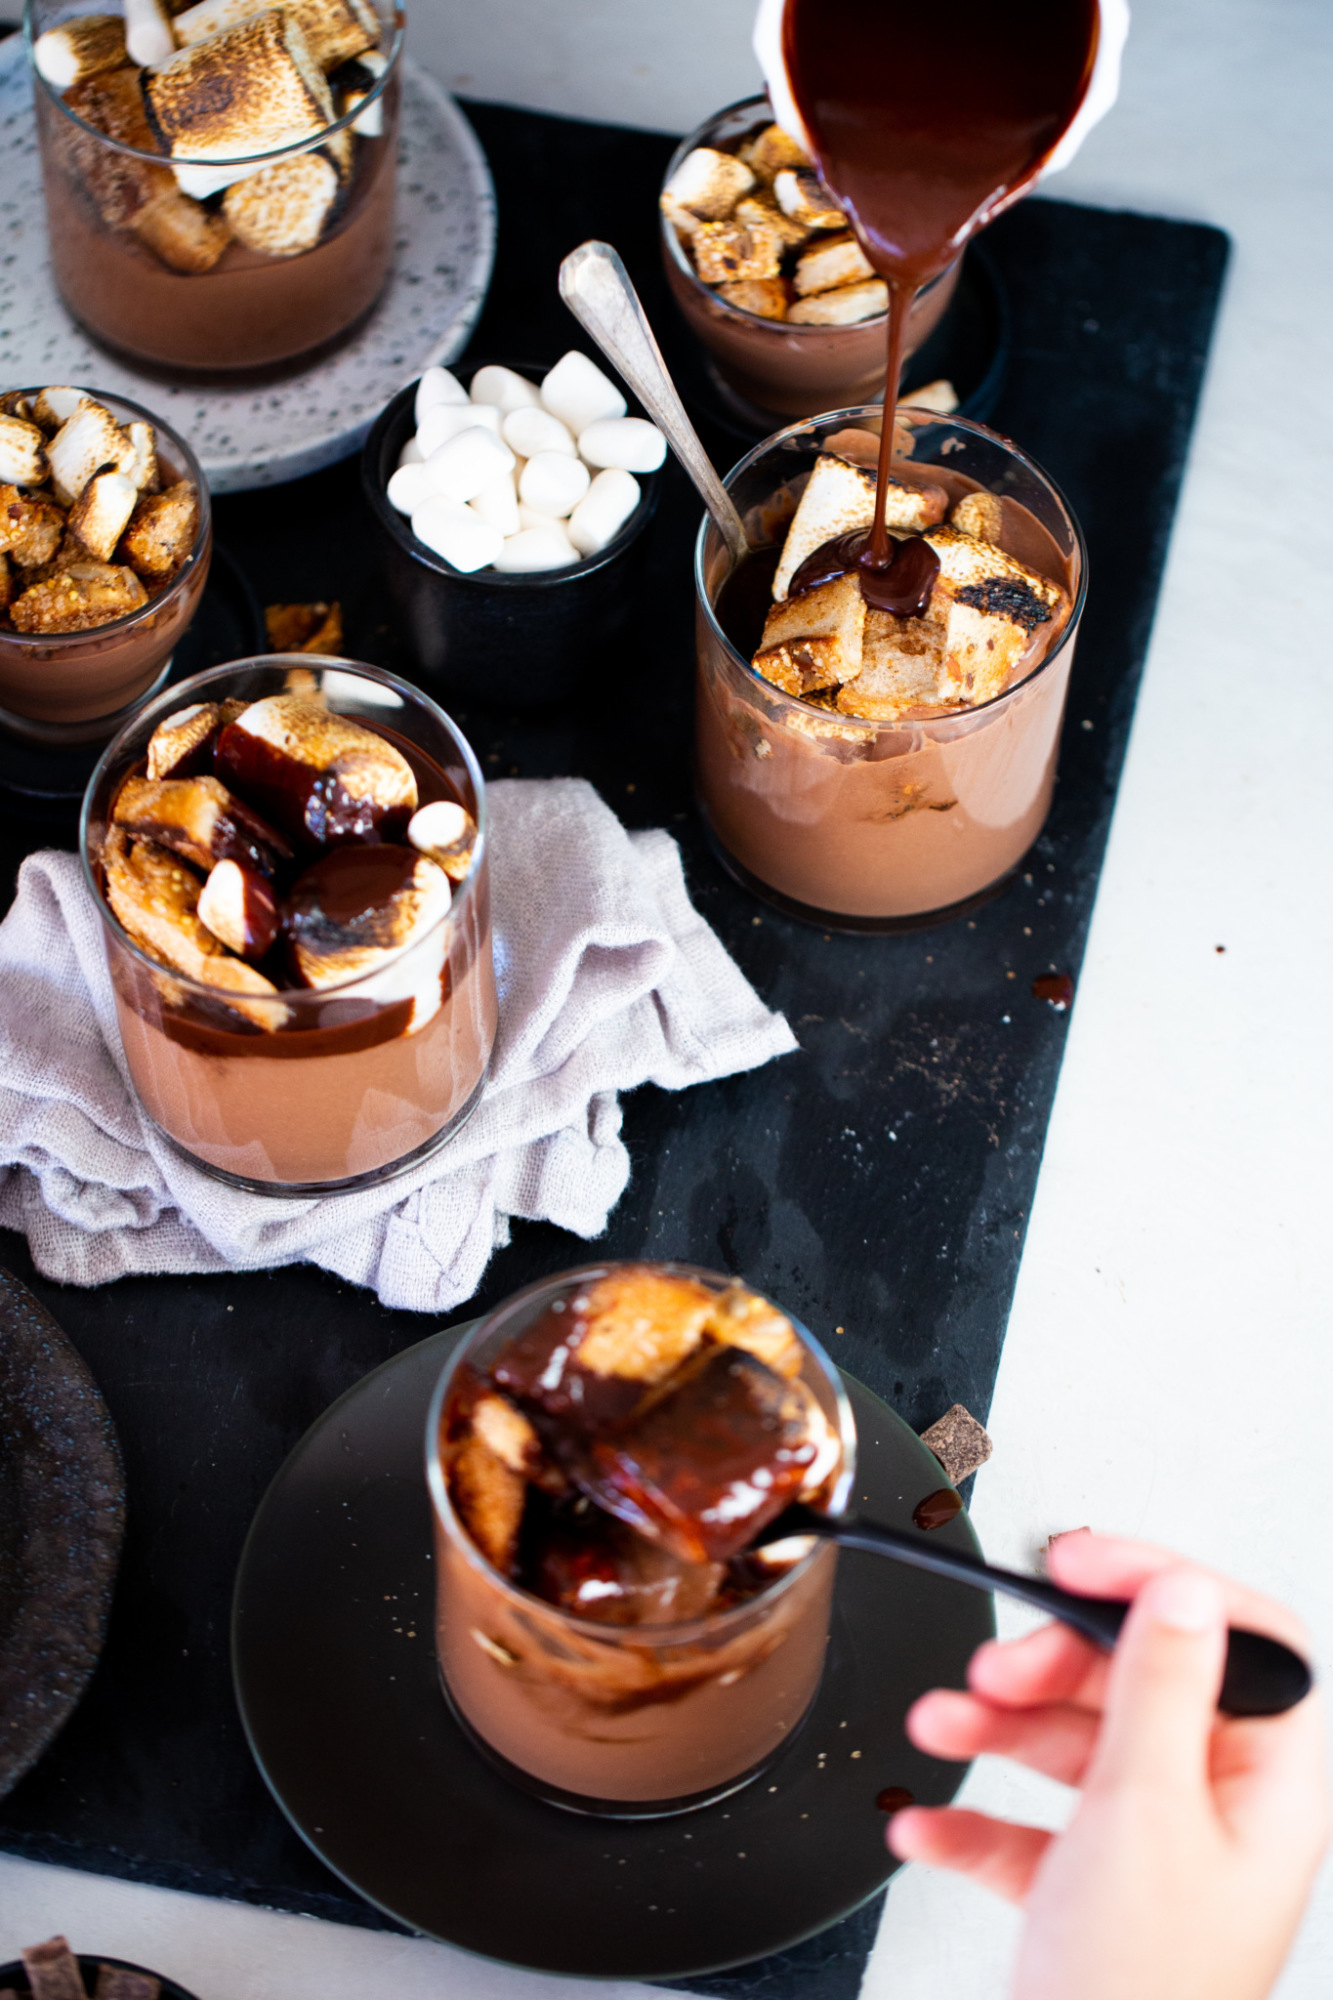 Chocolate sauce being poured over a vegan chocolate mousse.